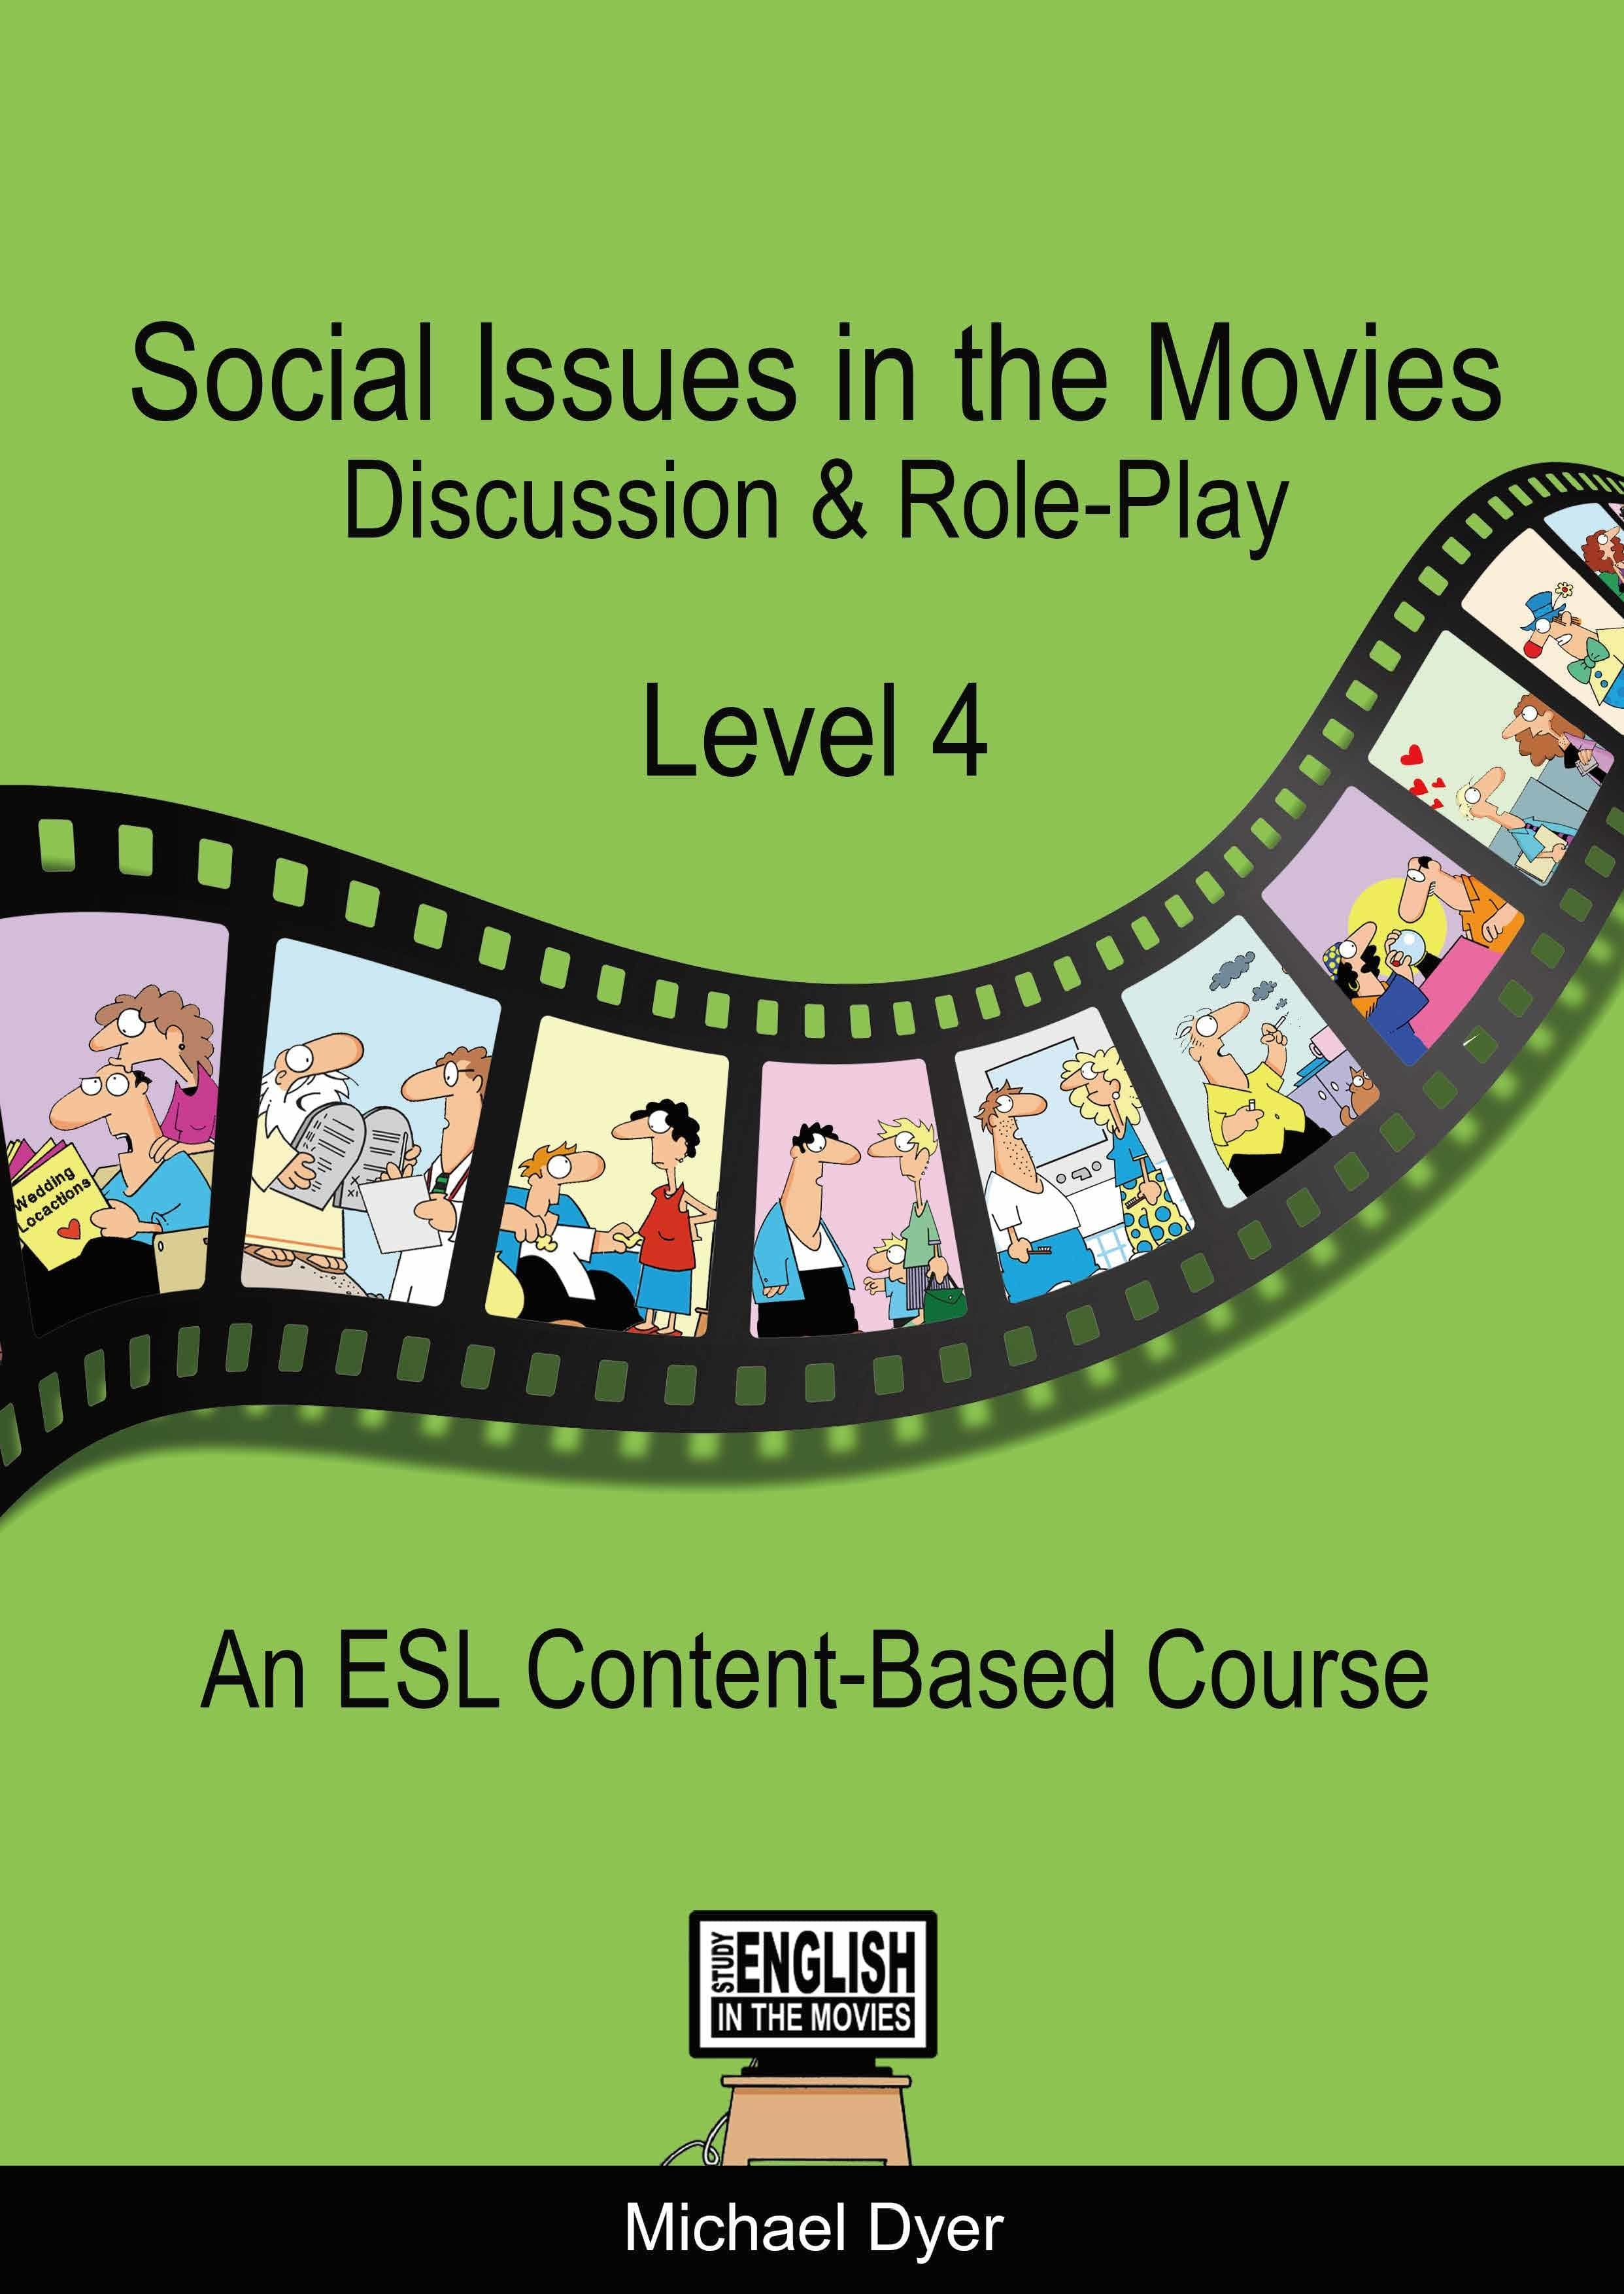 『Social Issues in the Movies Level4』Michael Dyer 著